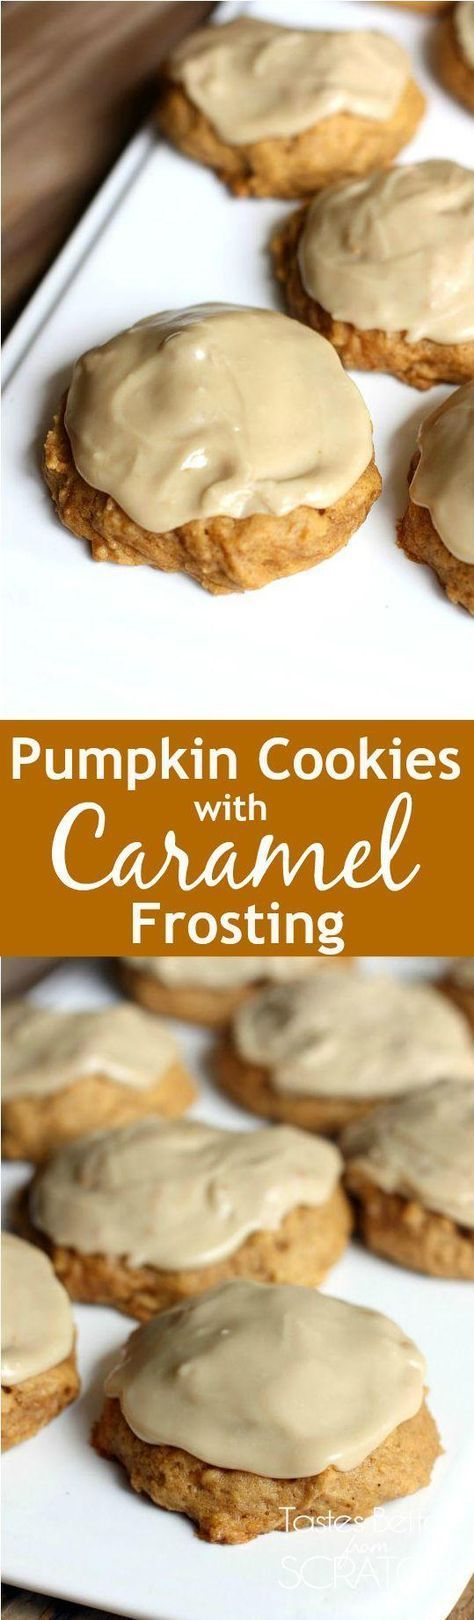 Cookies with Caramel Frosting These cookies are the BEST! Melt in your mouth soft pumpkin cookies with caramel frosting. Recipe fromThese cookies are the BEST! Melt in your mouth soft pumpkin cookies with caramel frosting. Recipe from